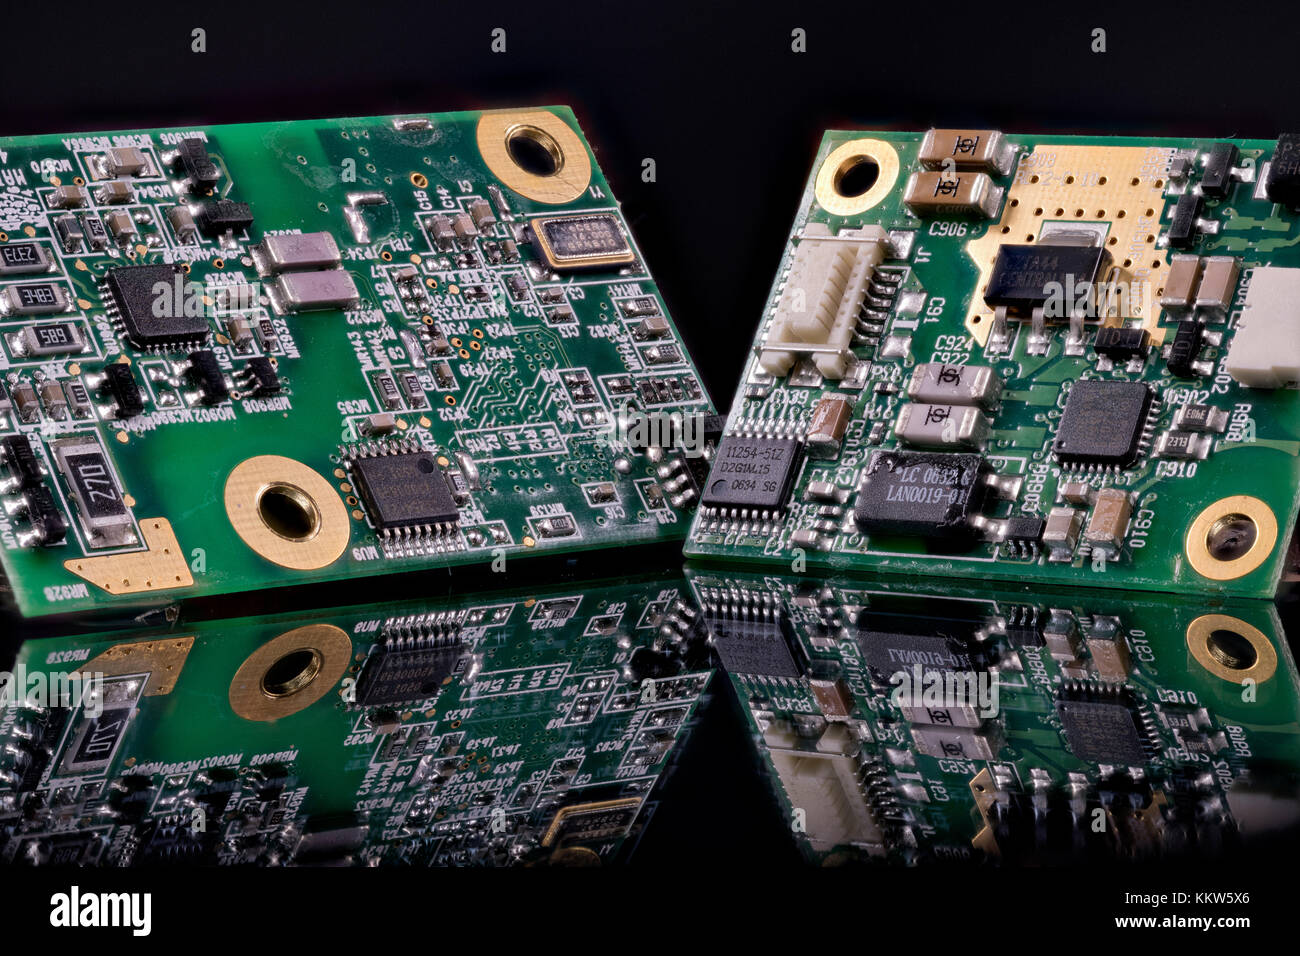 Printed Circuit Boards - Stock Image